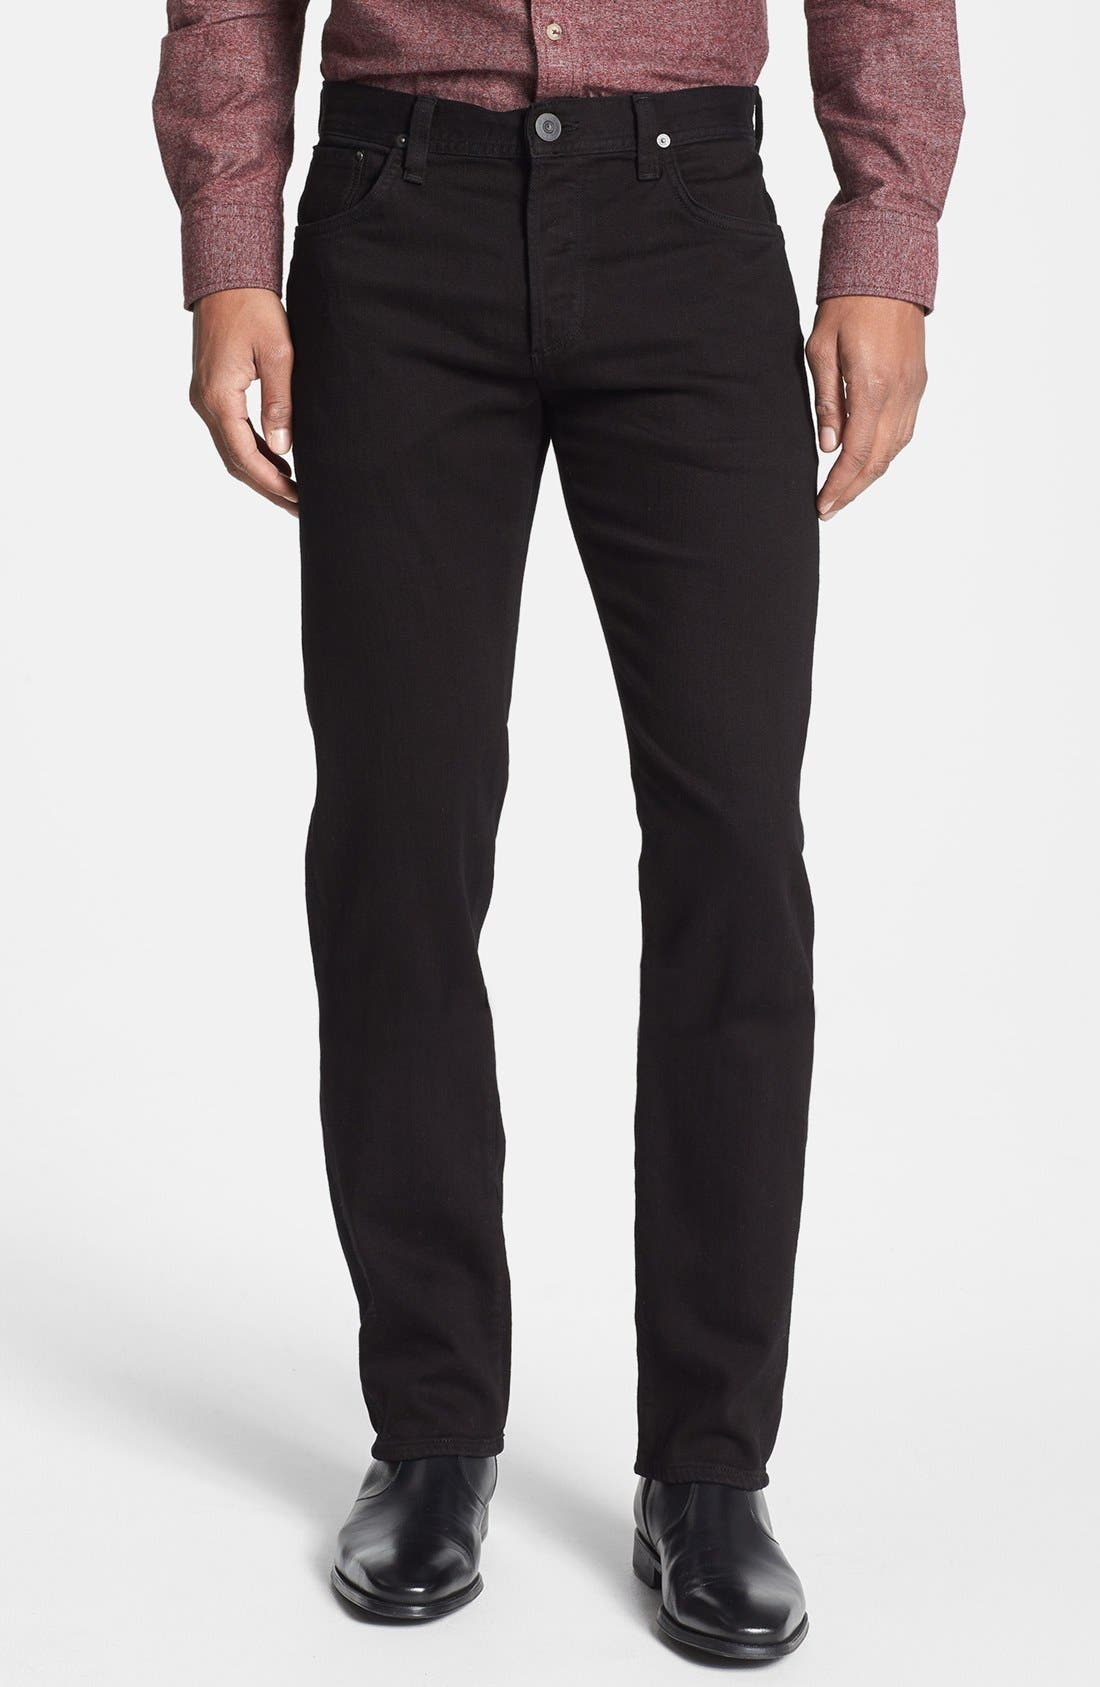 Alternate Image 1 Selected - Citizens of Humanity 'Core' Slim Straight Fit Jeans (Midnight)